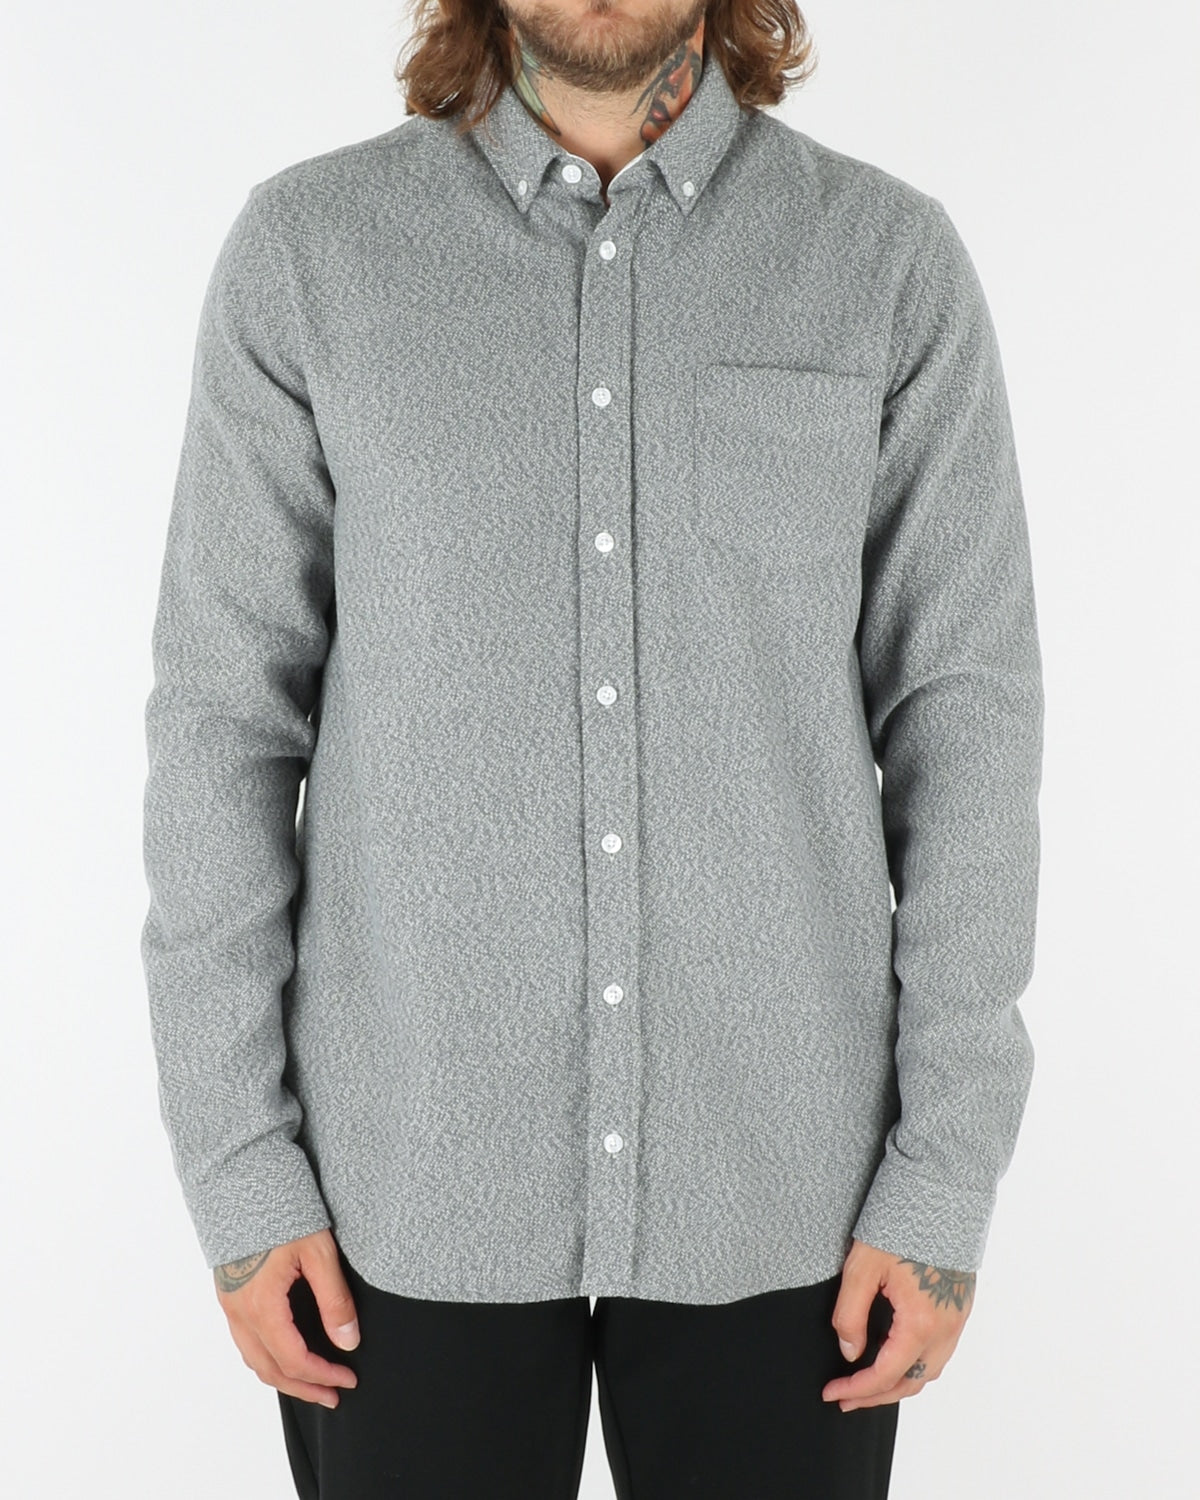 libertine libertine_hunter draper_shirt_grey_view_1_3